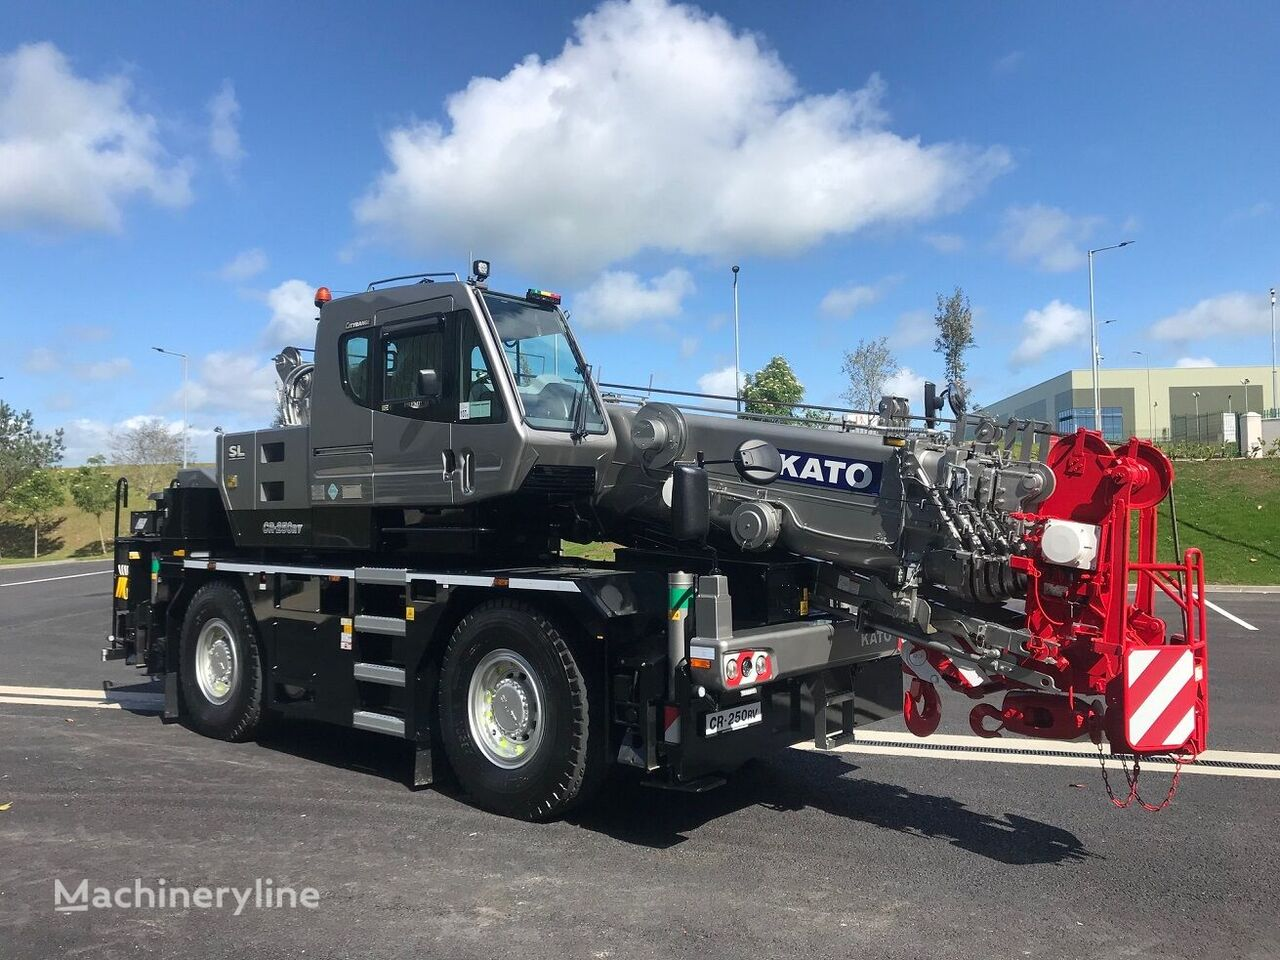 nova KATO NEW CR-250Rv - 25 Ton City Crane autodizalica